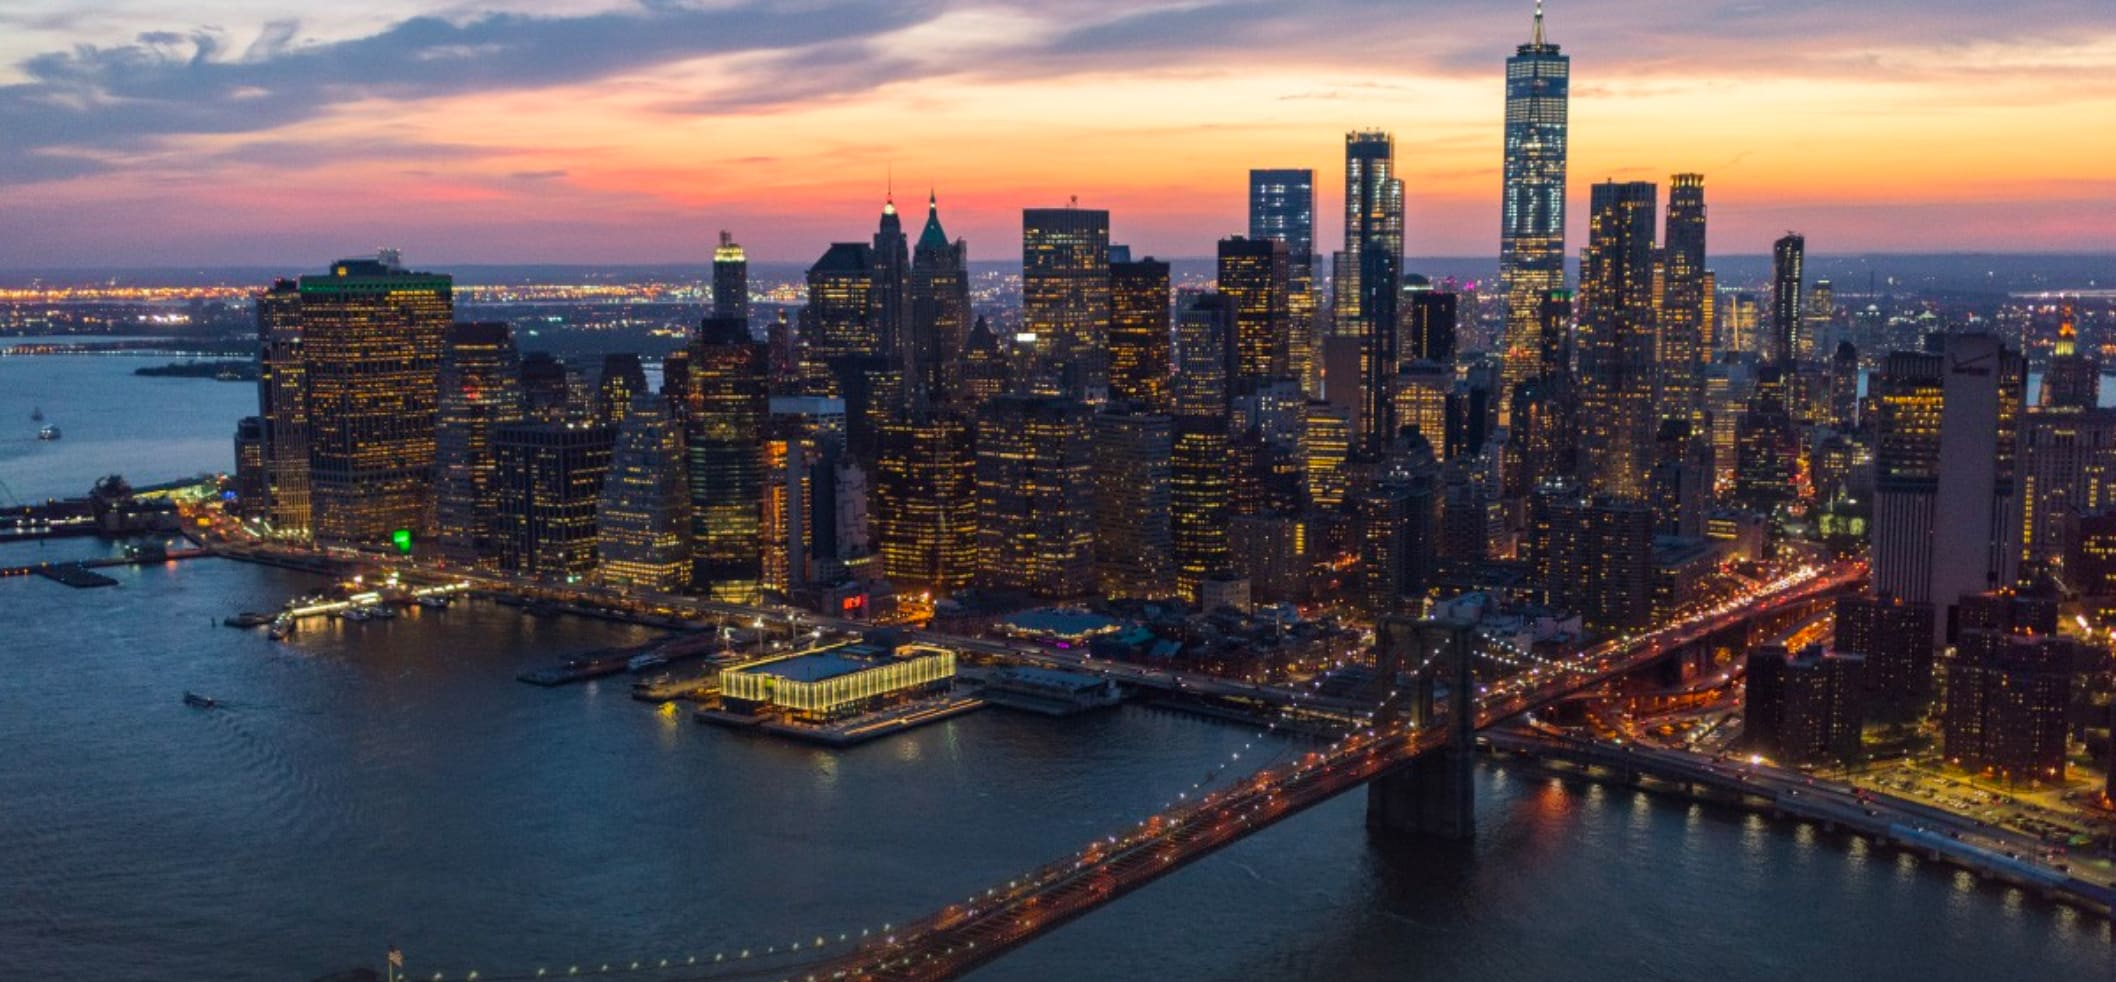 aerial image of the seaport district